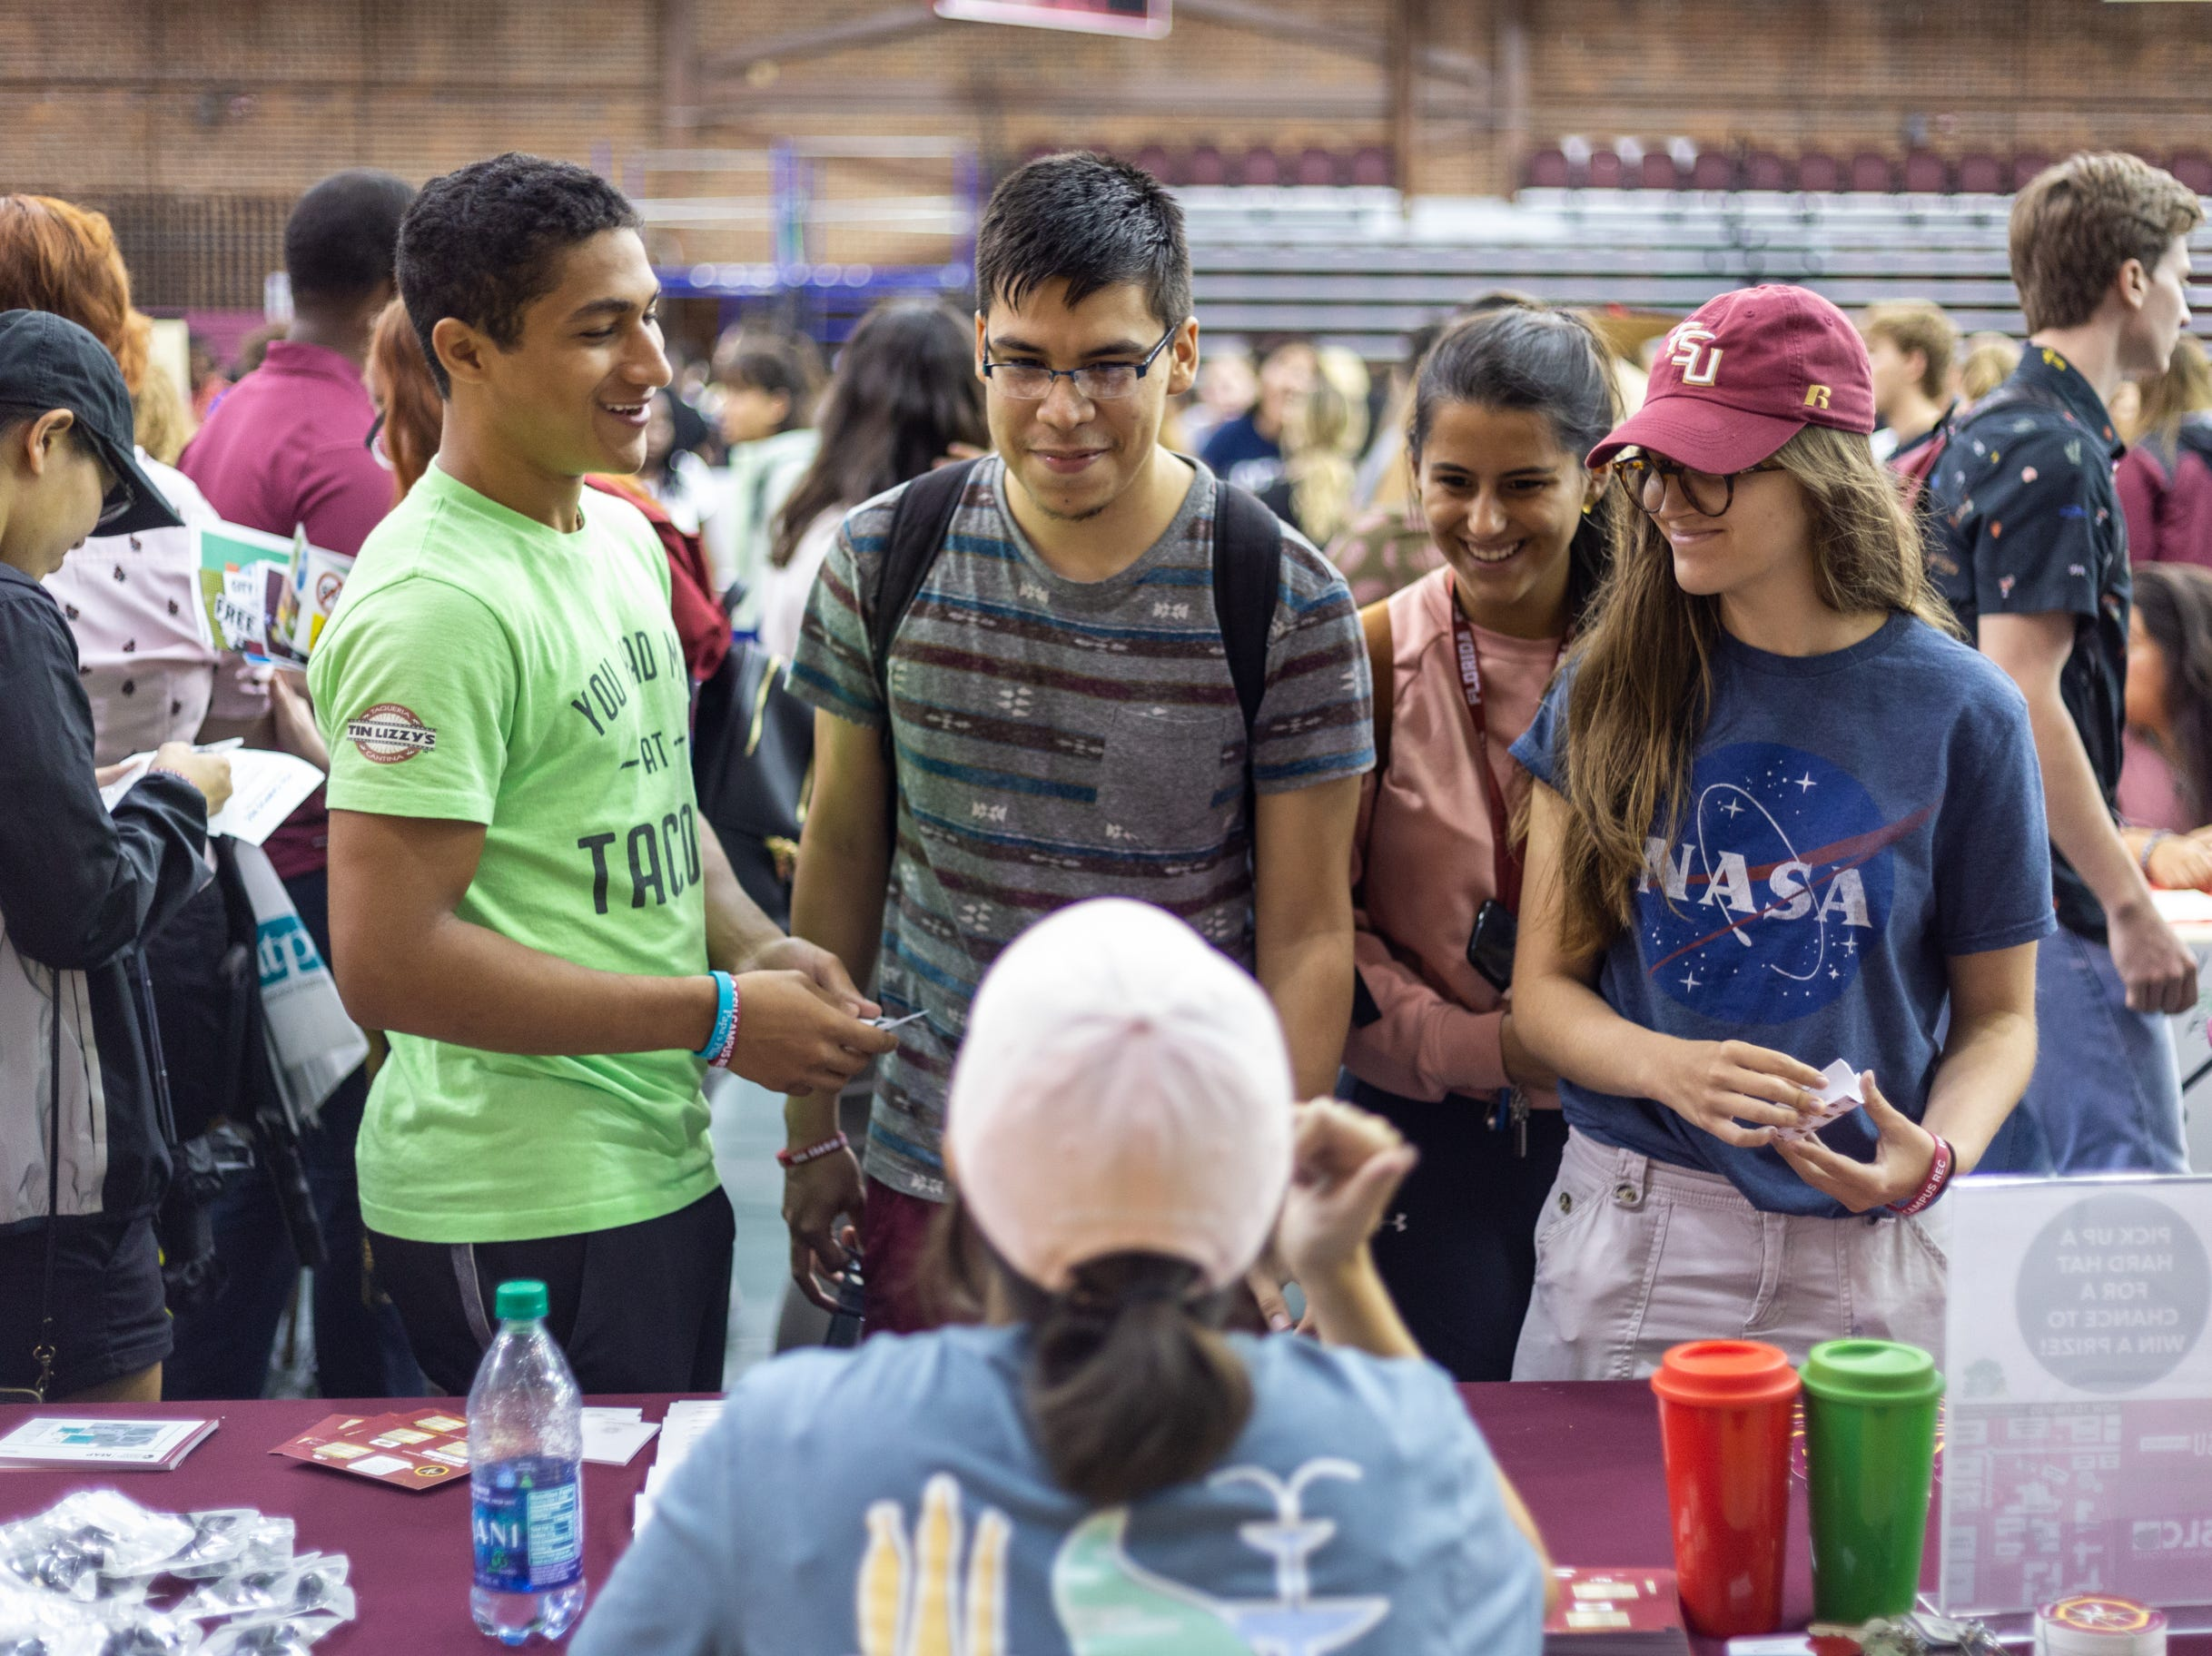 The Olgesby Union hosted the 2018 Fall Involvement Fair in the Leach Center and Tully Gymnasium. Coutless organizations tabled and hundereds of students showed up to get involved on Tuesday.